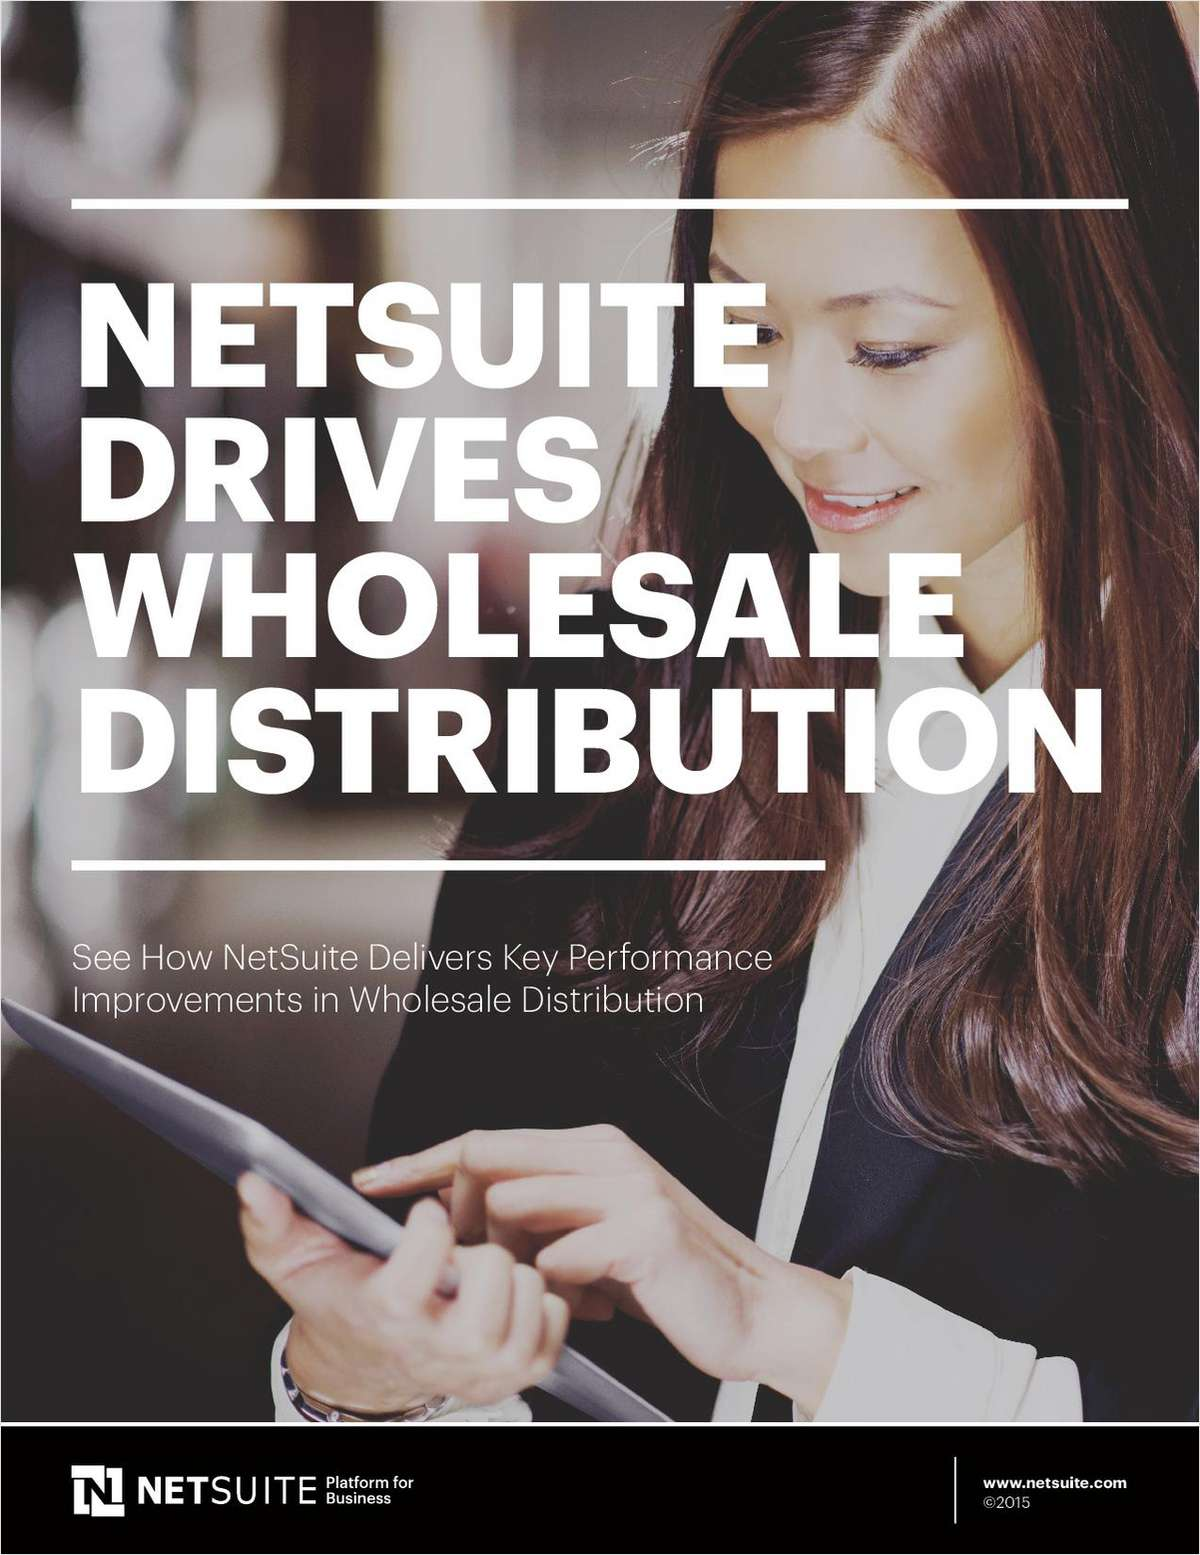 NetSuite Drives Wholesale Distribution